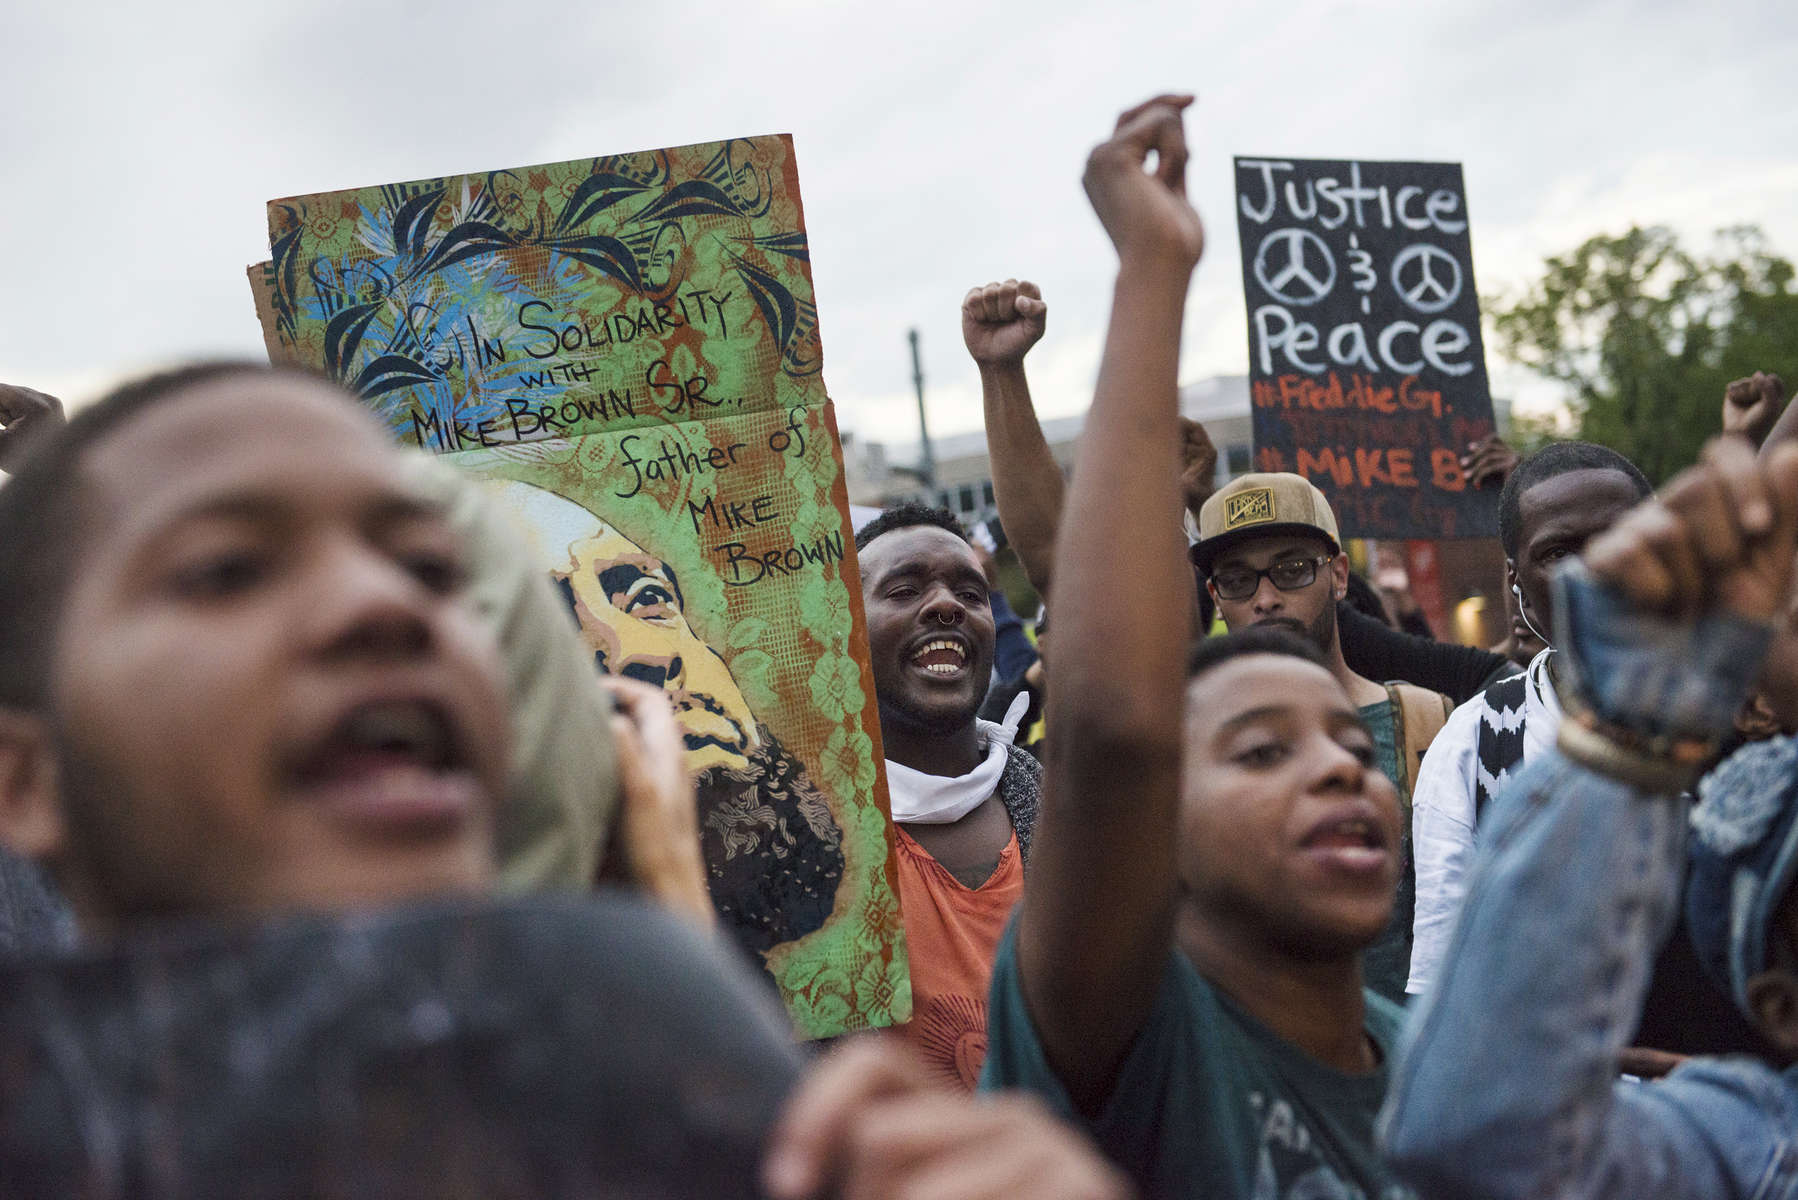 BALTIMORE, MD- APRIL 30:  Terry Kenard, 25, marches with protestors through the streets  of Baltimore in support of Freddie Gray on Thursday, April 30, 2015  in Baltimore, MD. (Photo by Amanda Voisard/For the Washington Post)